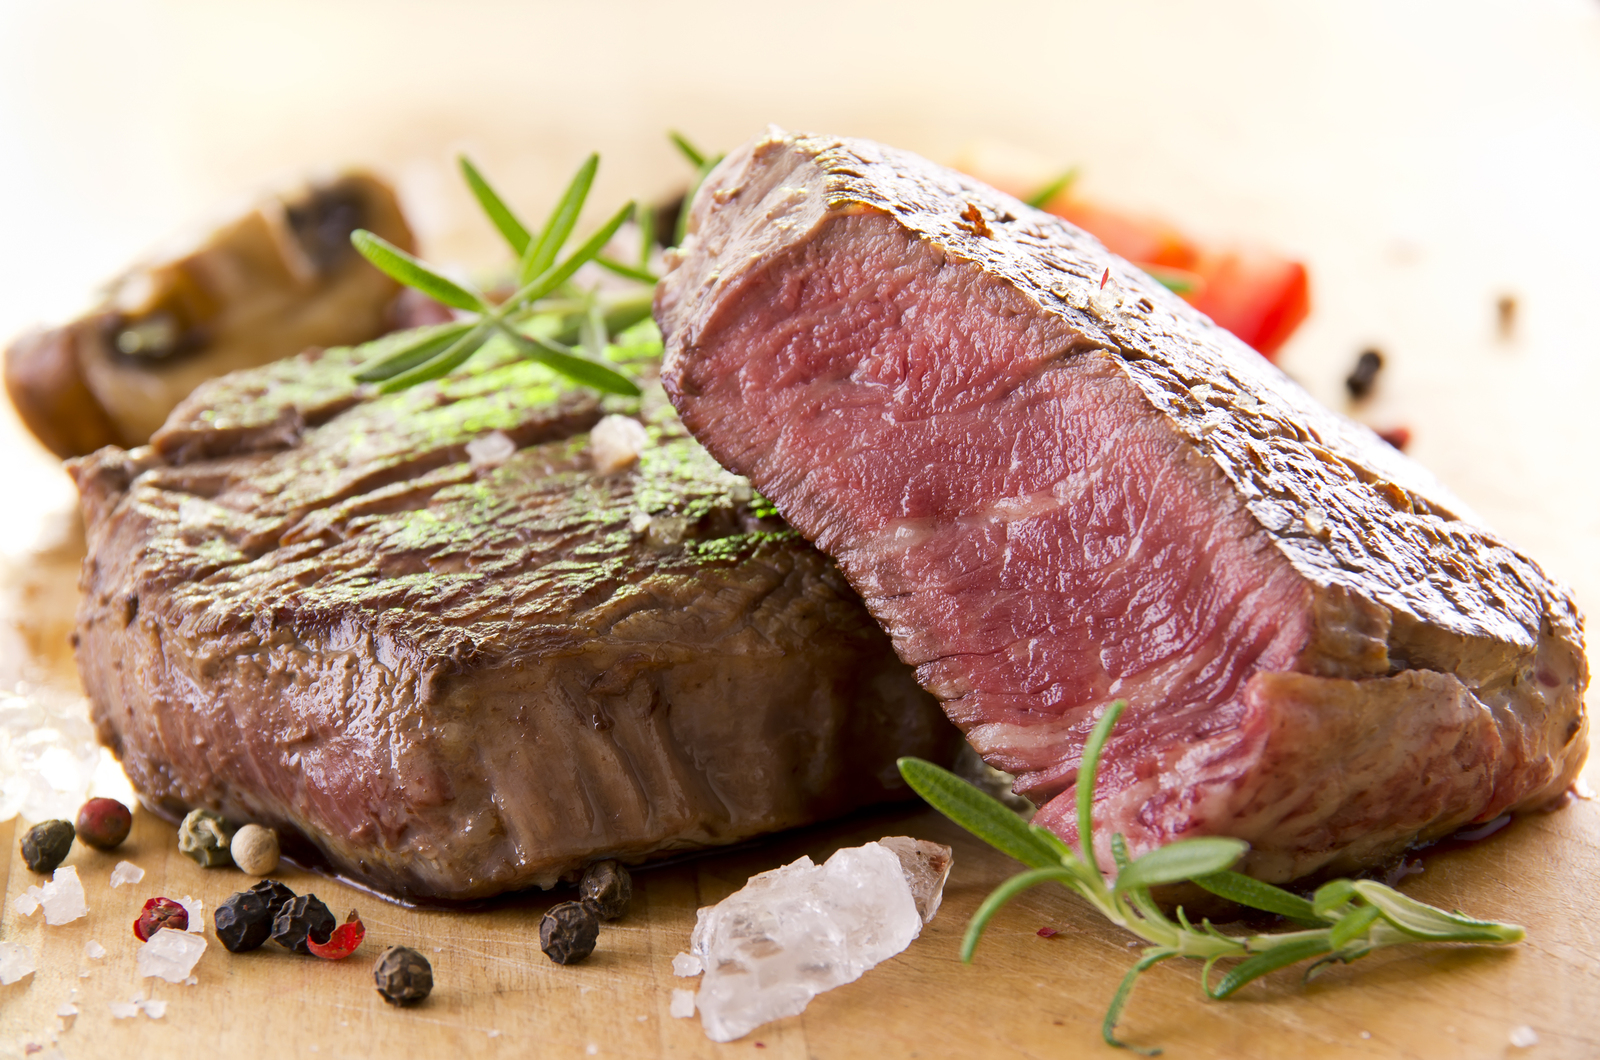 bigstock-beef-steak-with-herbs-41076253.jpg